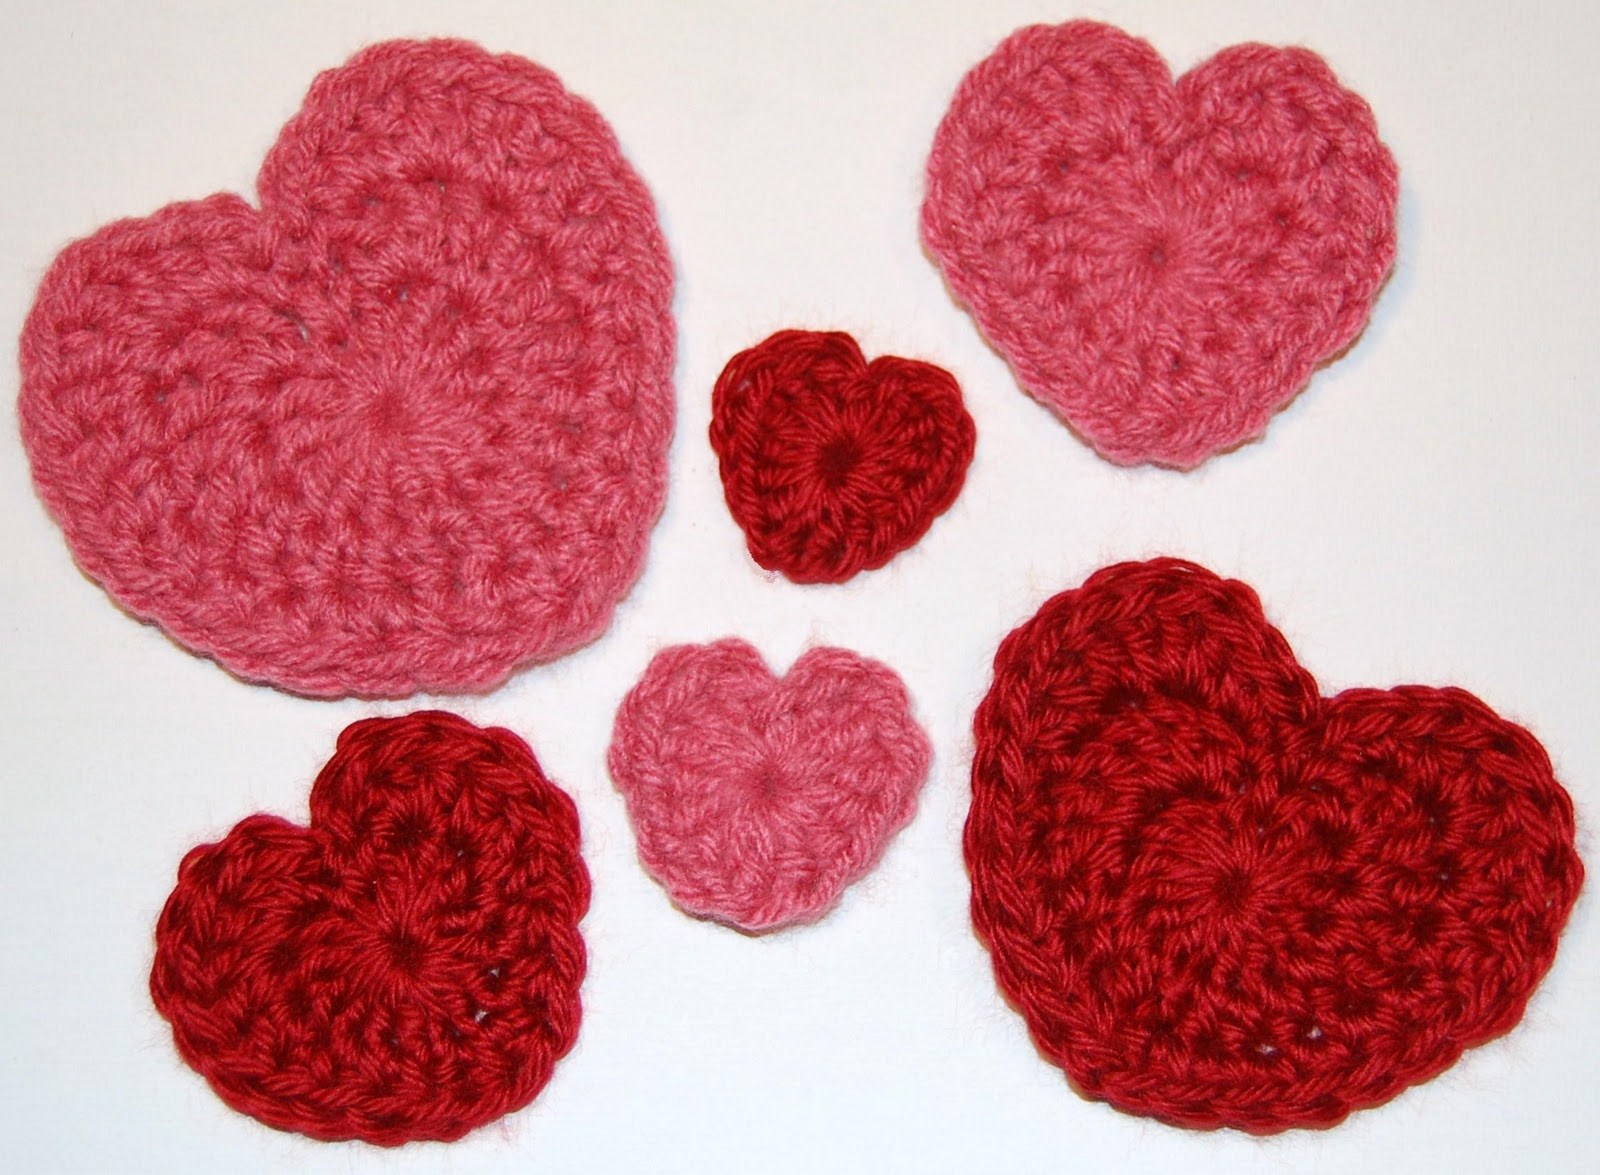 Crochet Patterns Hearts : Valentines Day Heart Crochet Patterns - Petals to Picots